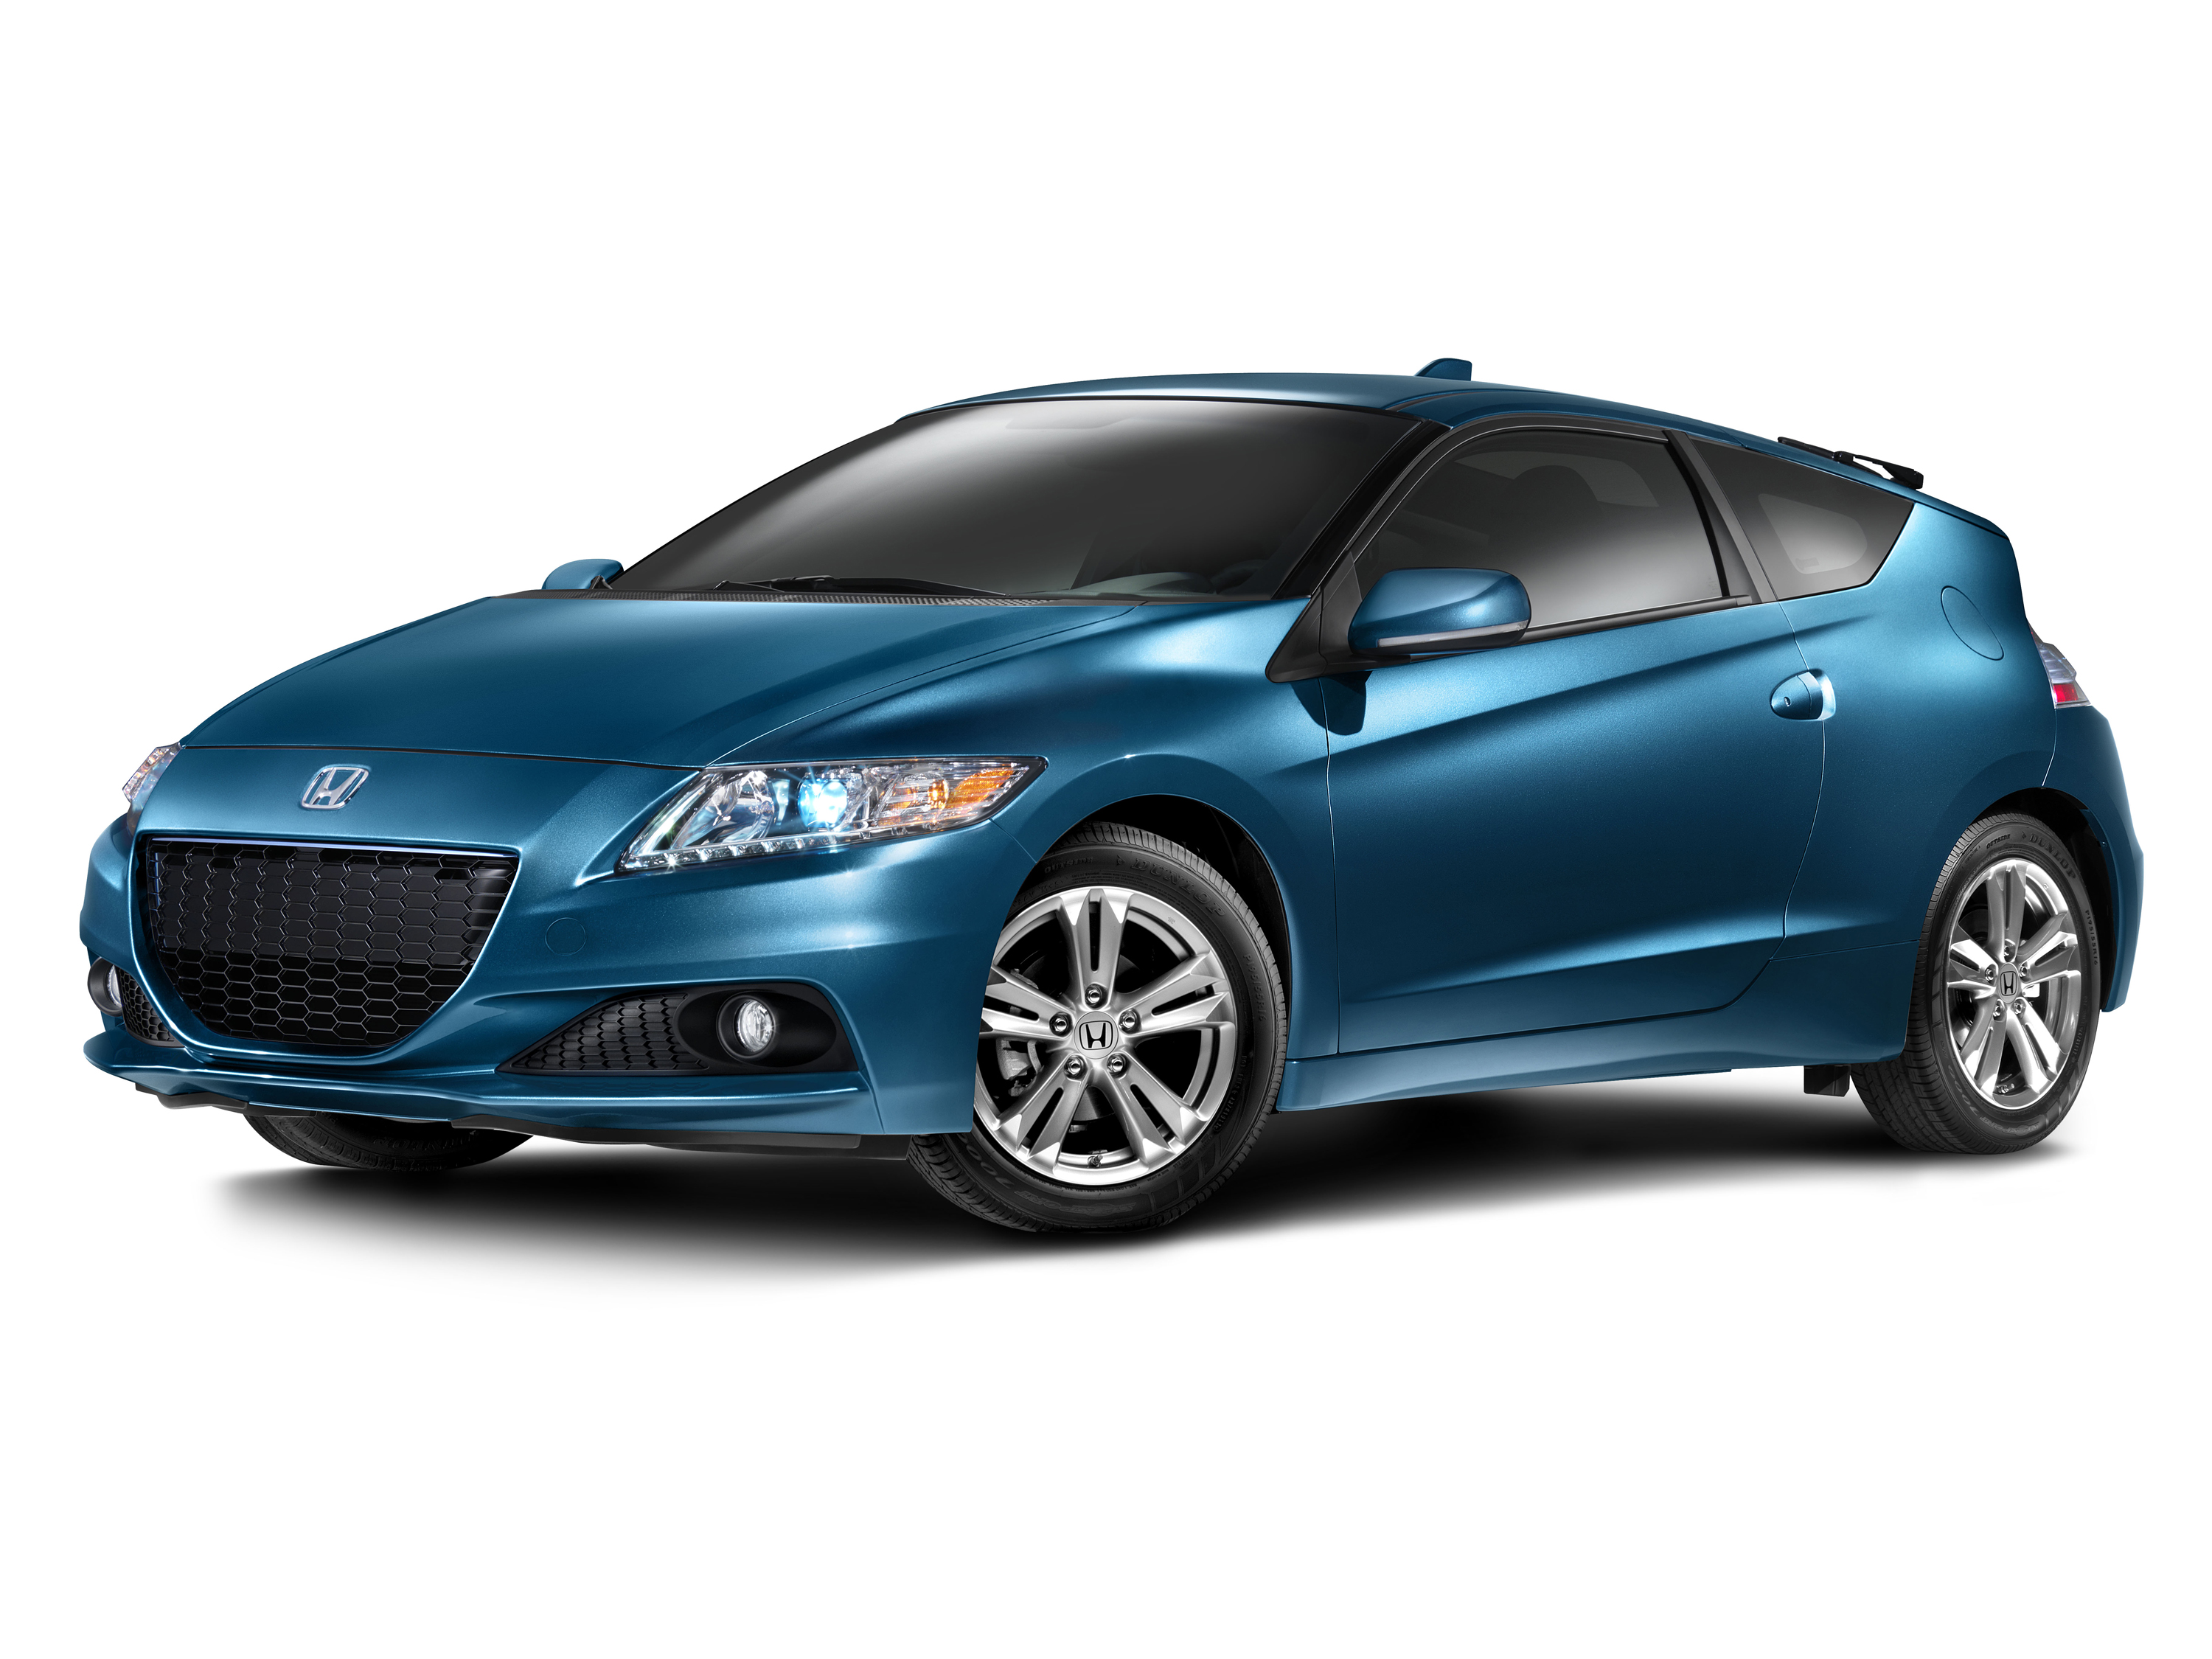 2015 honda cr z_100477517_h 2015 honda cr z hybrid two seat coupe unchanged for new model year 2013 Honda CR-Z Interior at highcare.asia